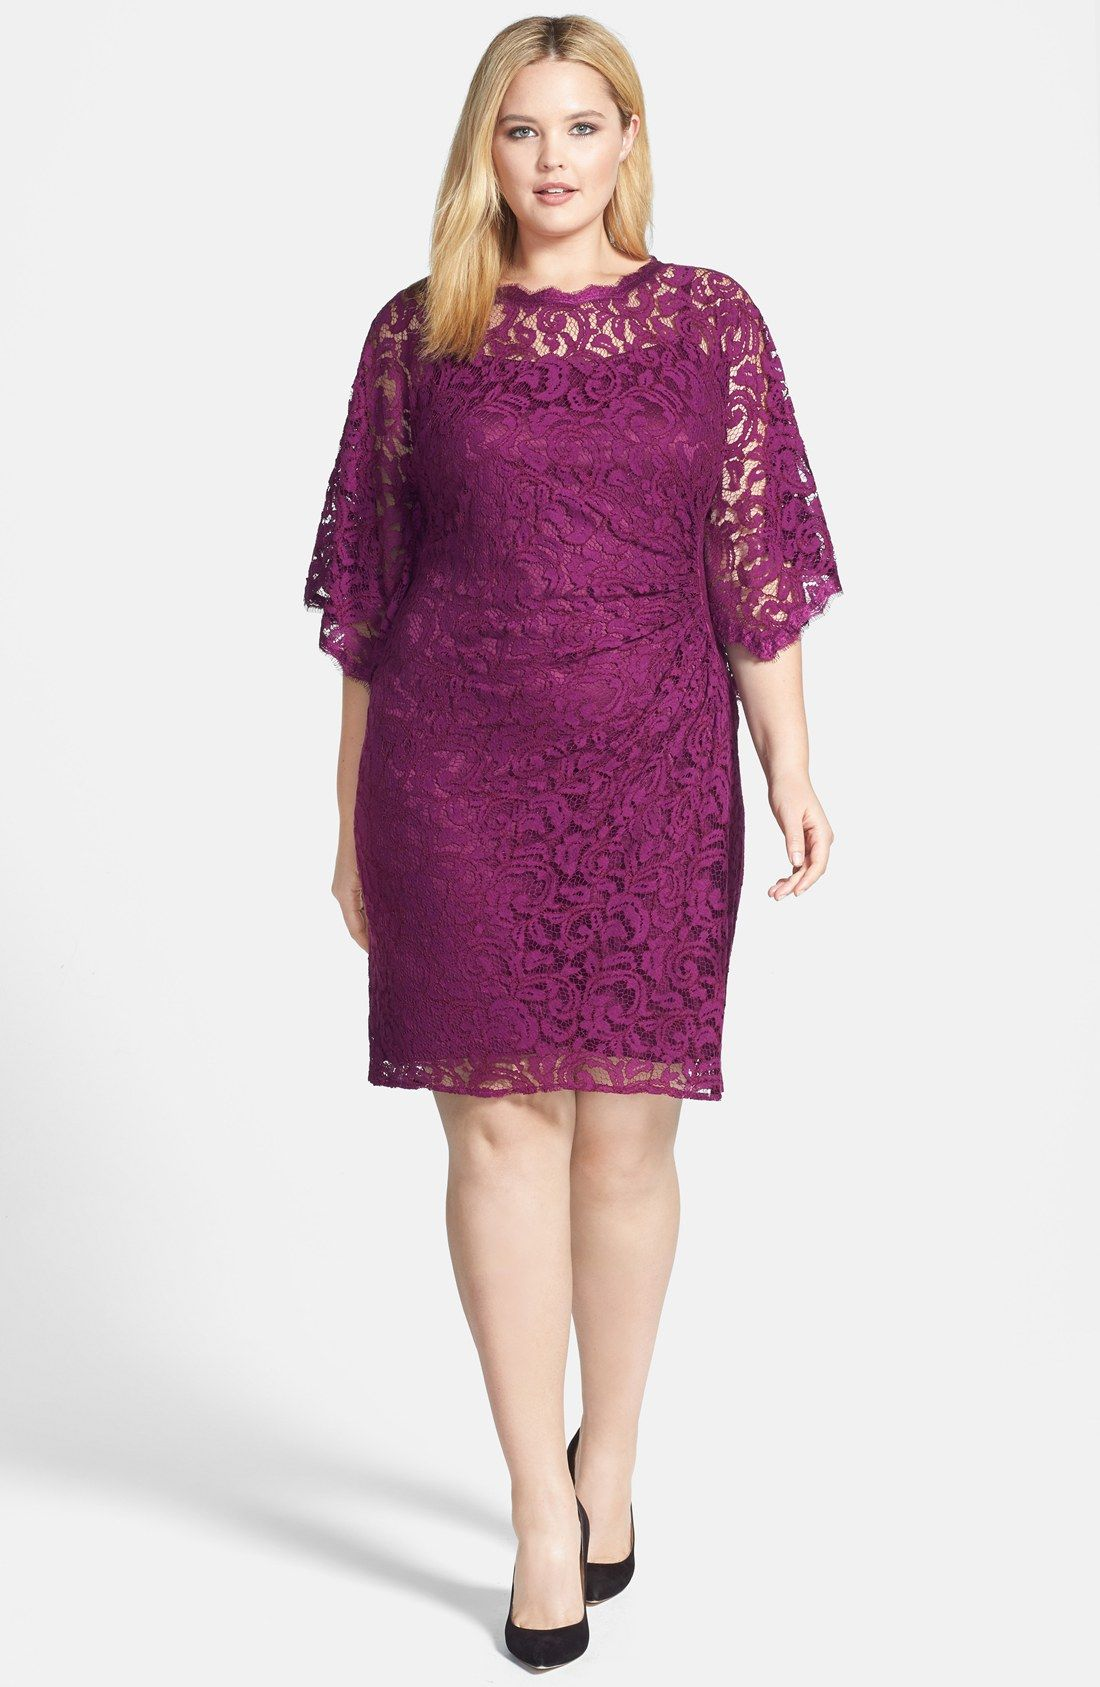 Plus Size Special Occasion Dresses Nordstrom | Huston Fislar Photography